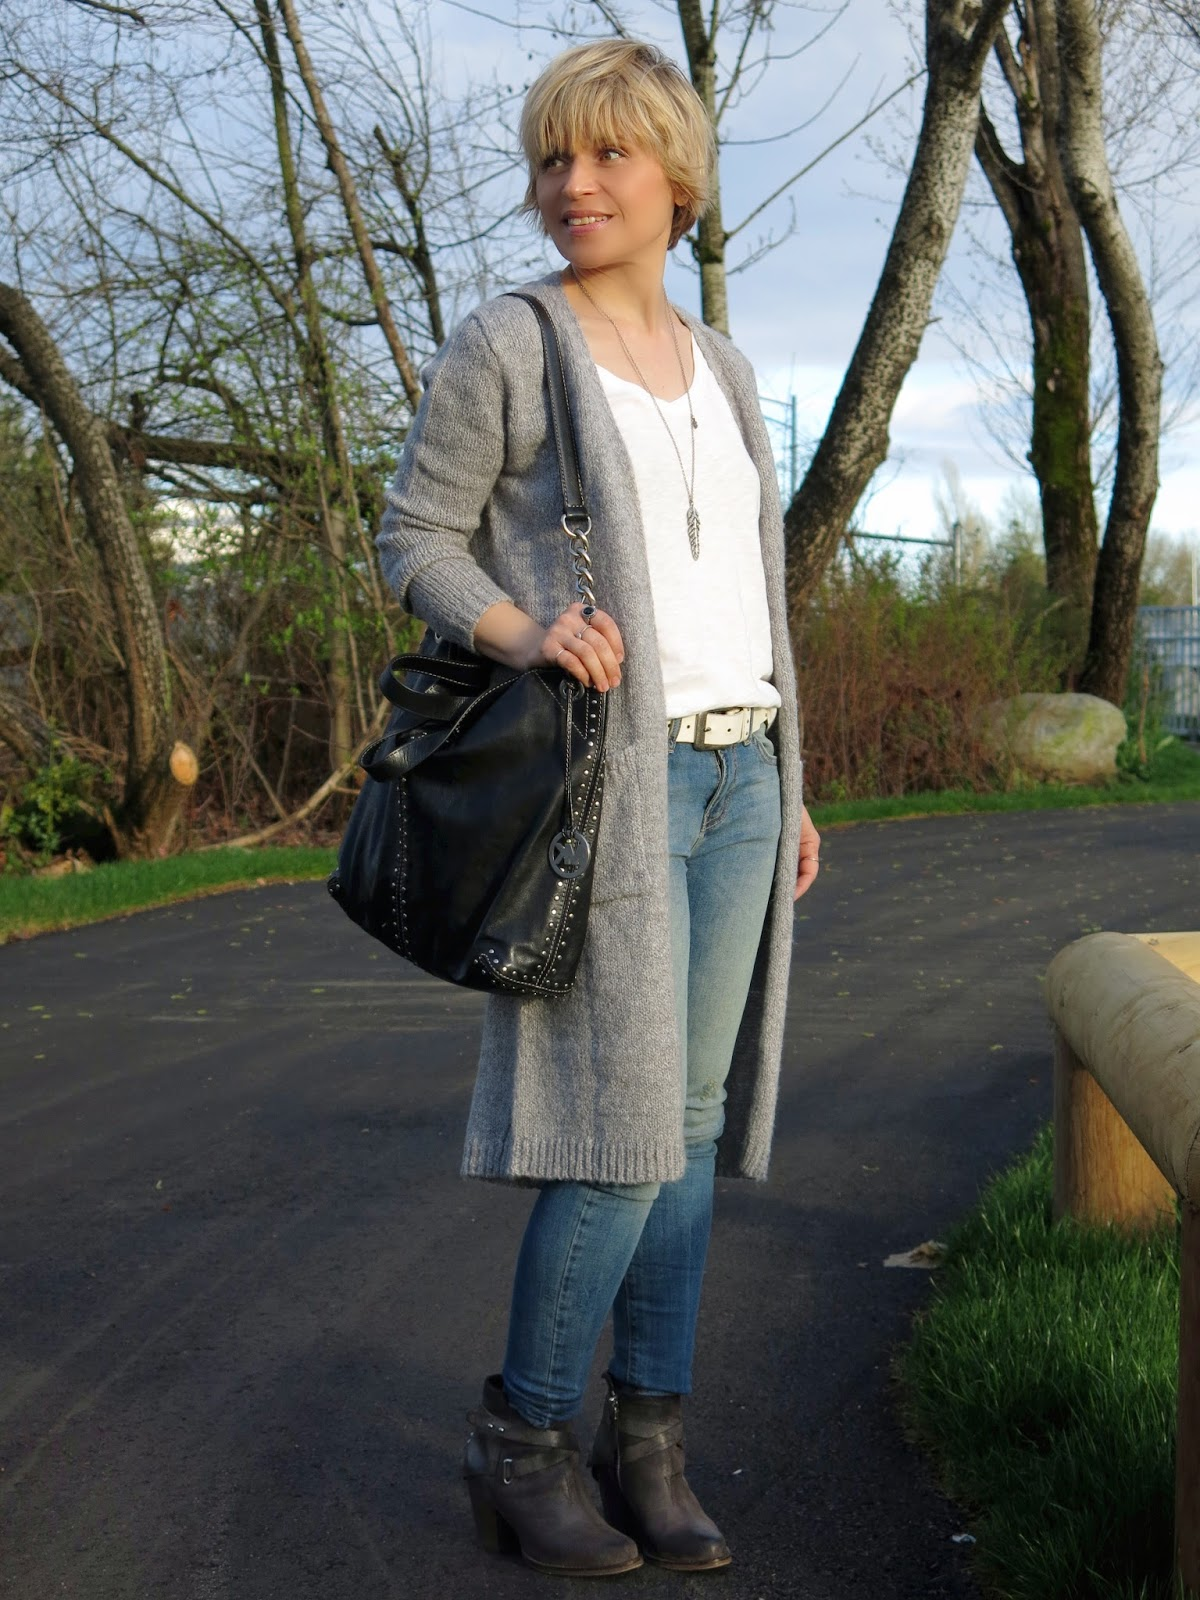 styling a long grey cardigan with skinny jeans and booties